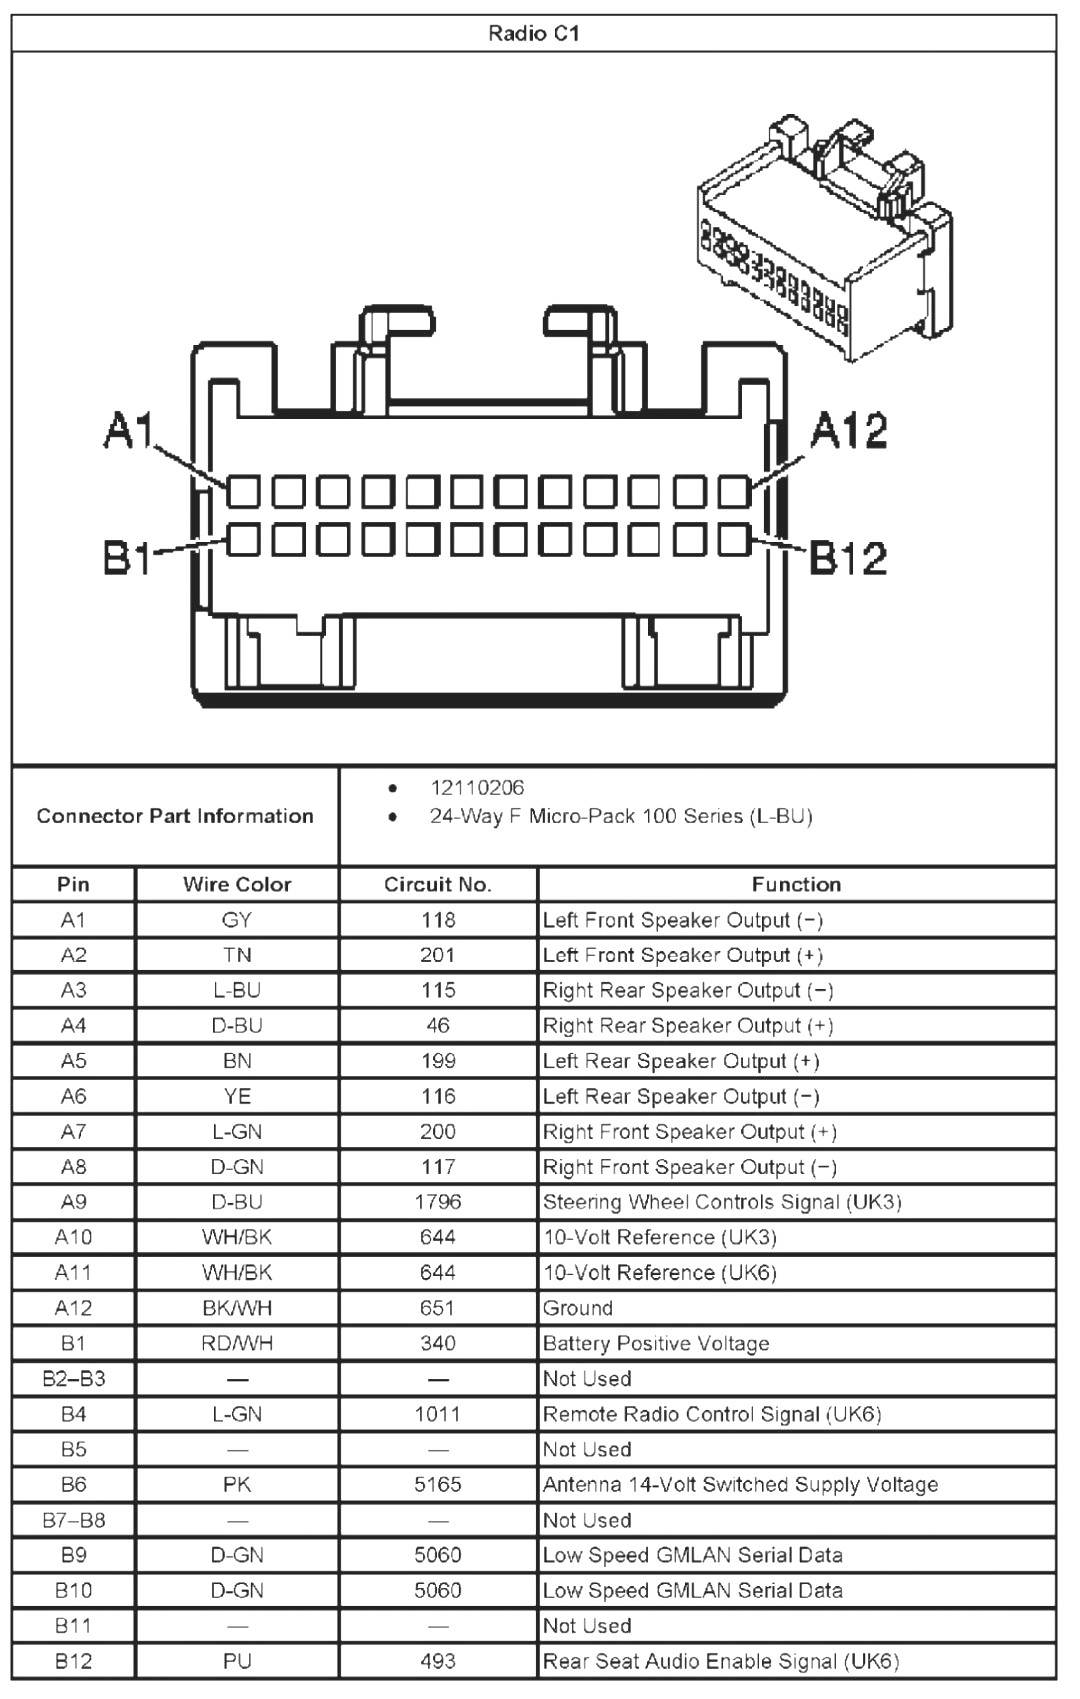 chevy impala radio wiring diagram - wiring diagram cycle-view-b -  cycle-view-b.bookyourstudy.fr  bookyourstudy.fr